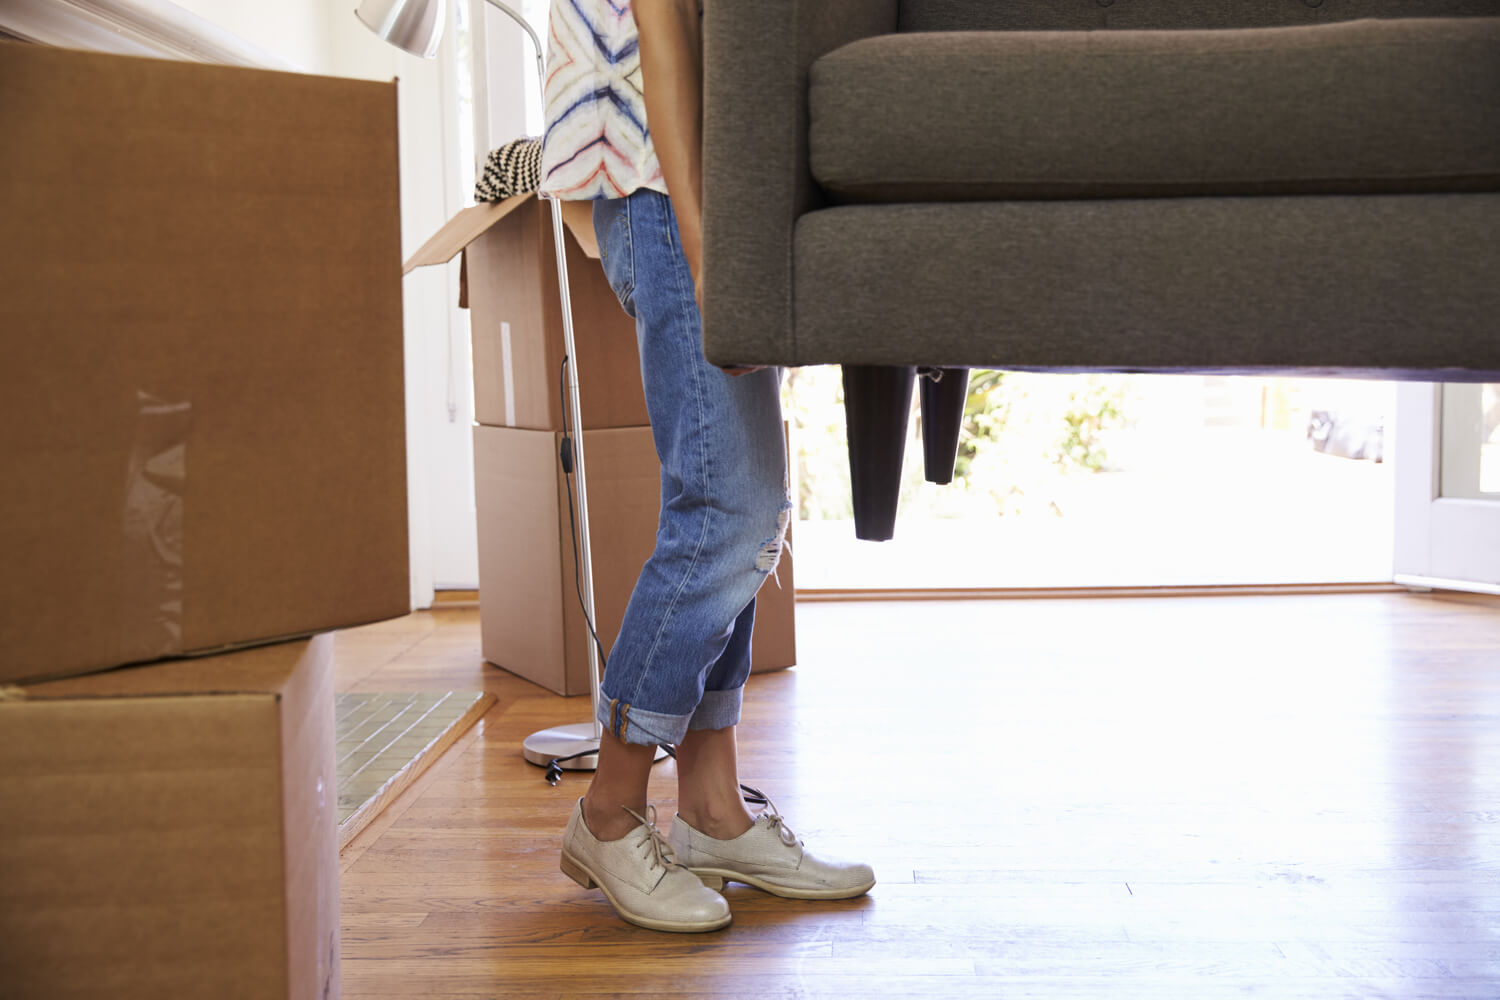 woman lifting couch - multifamily moving tips